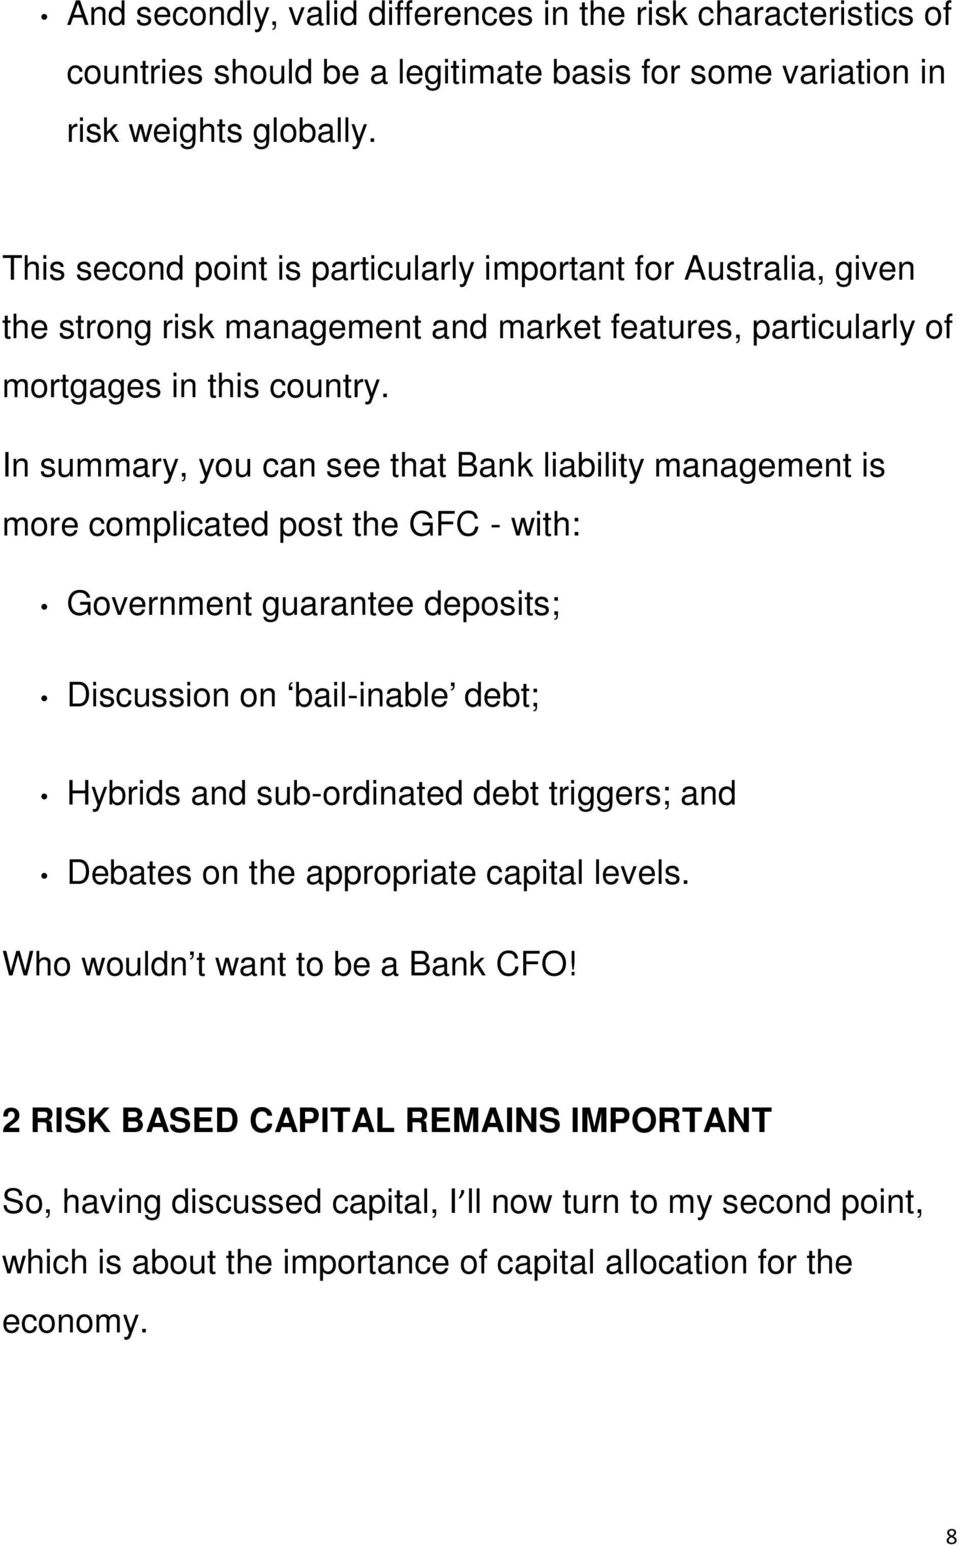 In summary, you can see that Bank liability management is more complicated post the GFC - with: Government guarantee deposits; Discussion on bail-inable debt; Hybrids and sub-ordinated debt